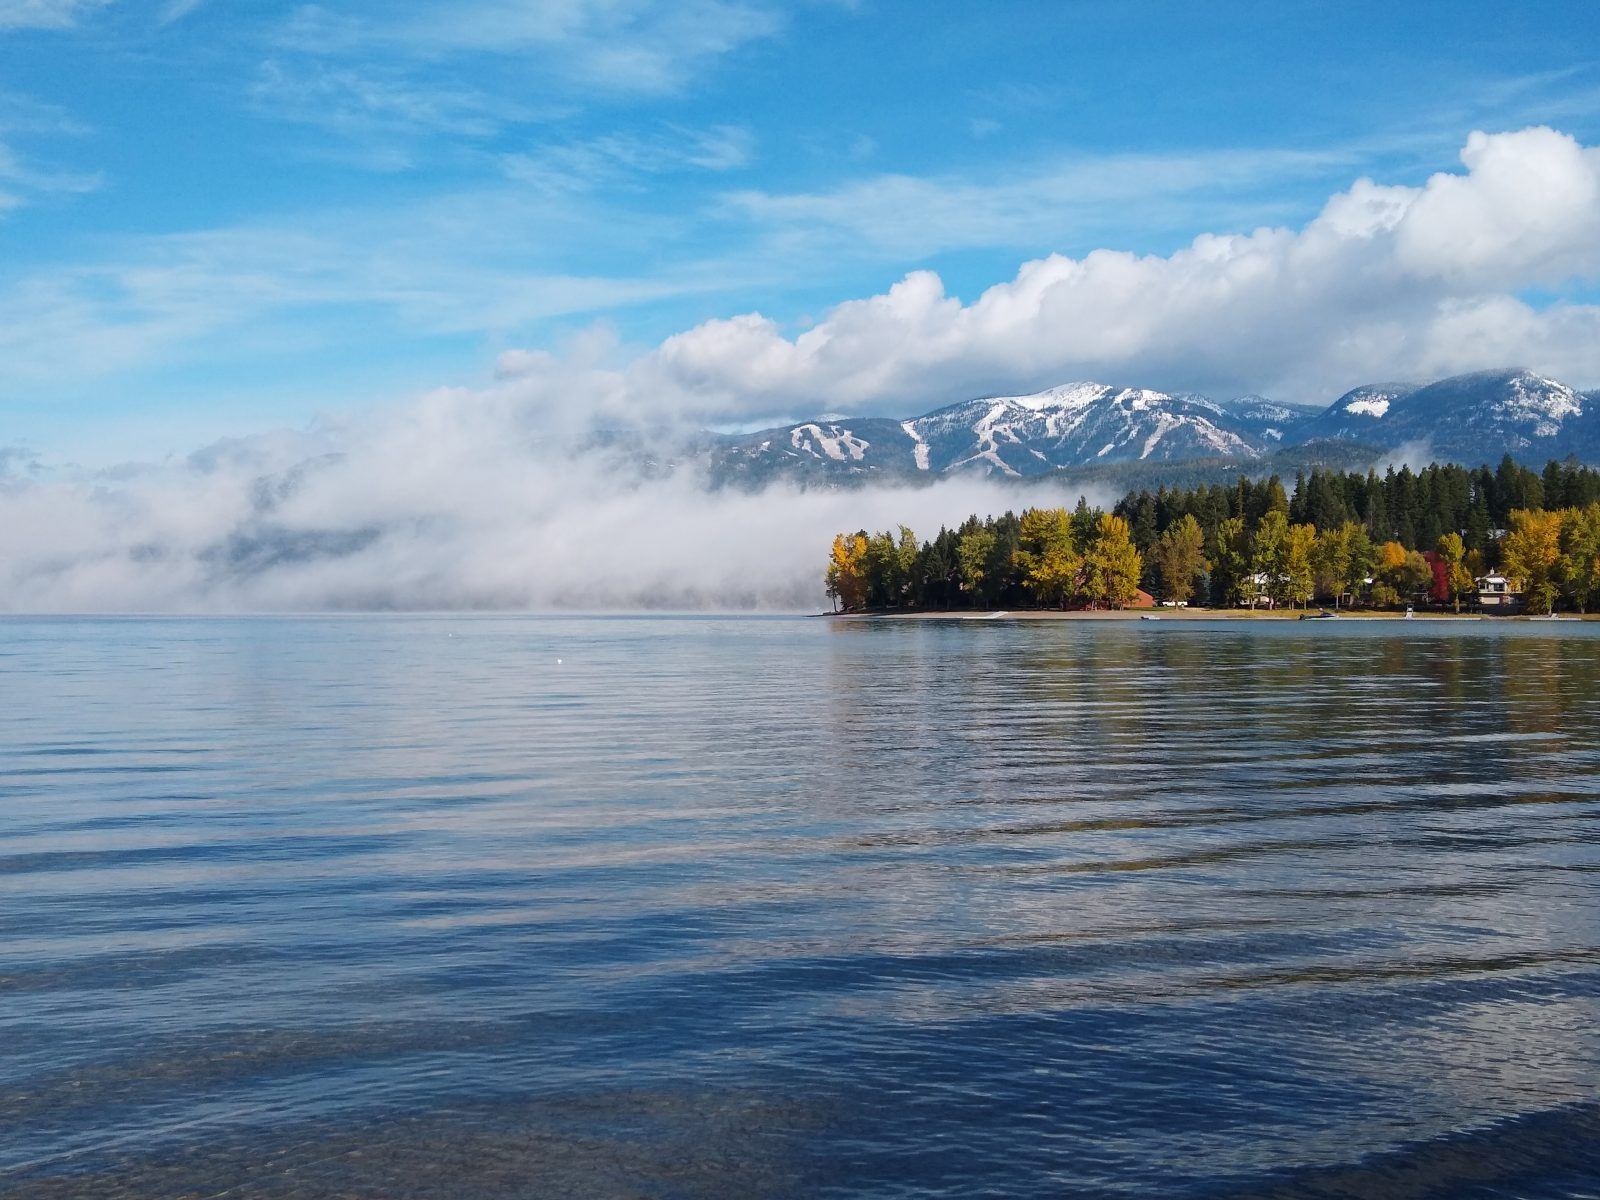 Clearing clouds, Big Mountai, and Whitefish Lake